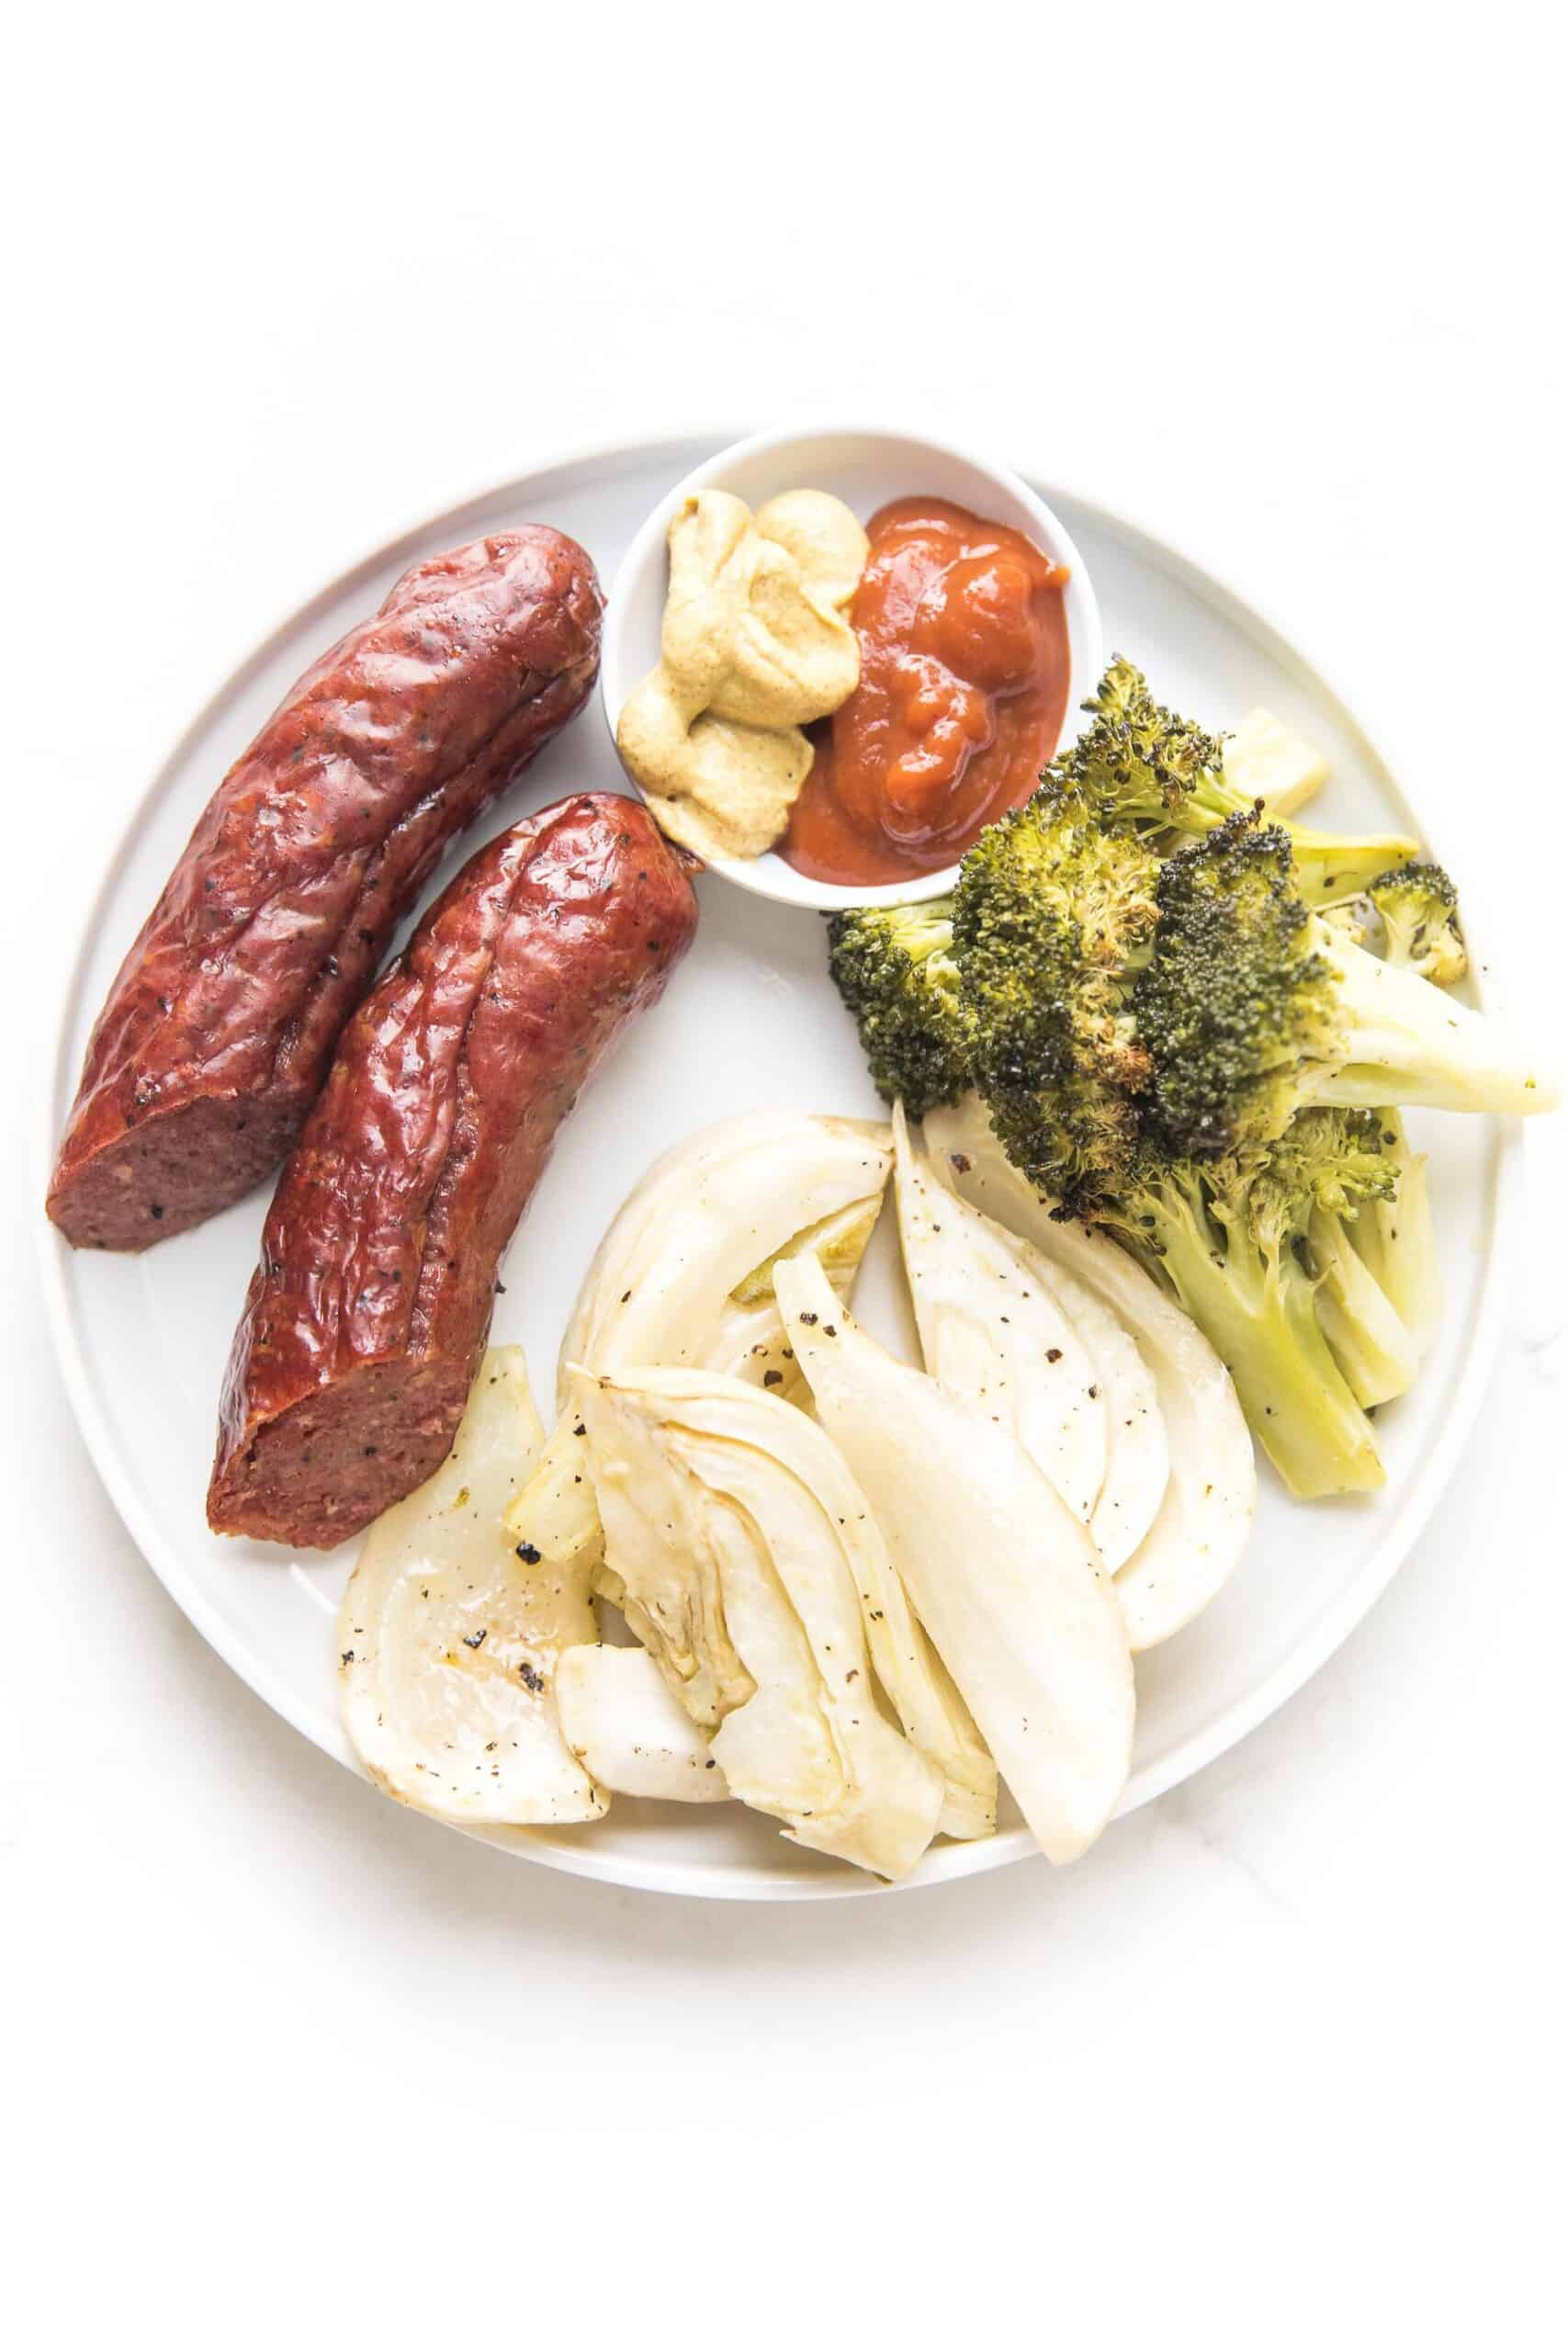 sausage, roasted fennel and broccoli on a white plate and background